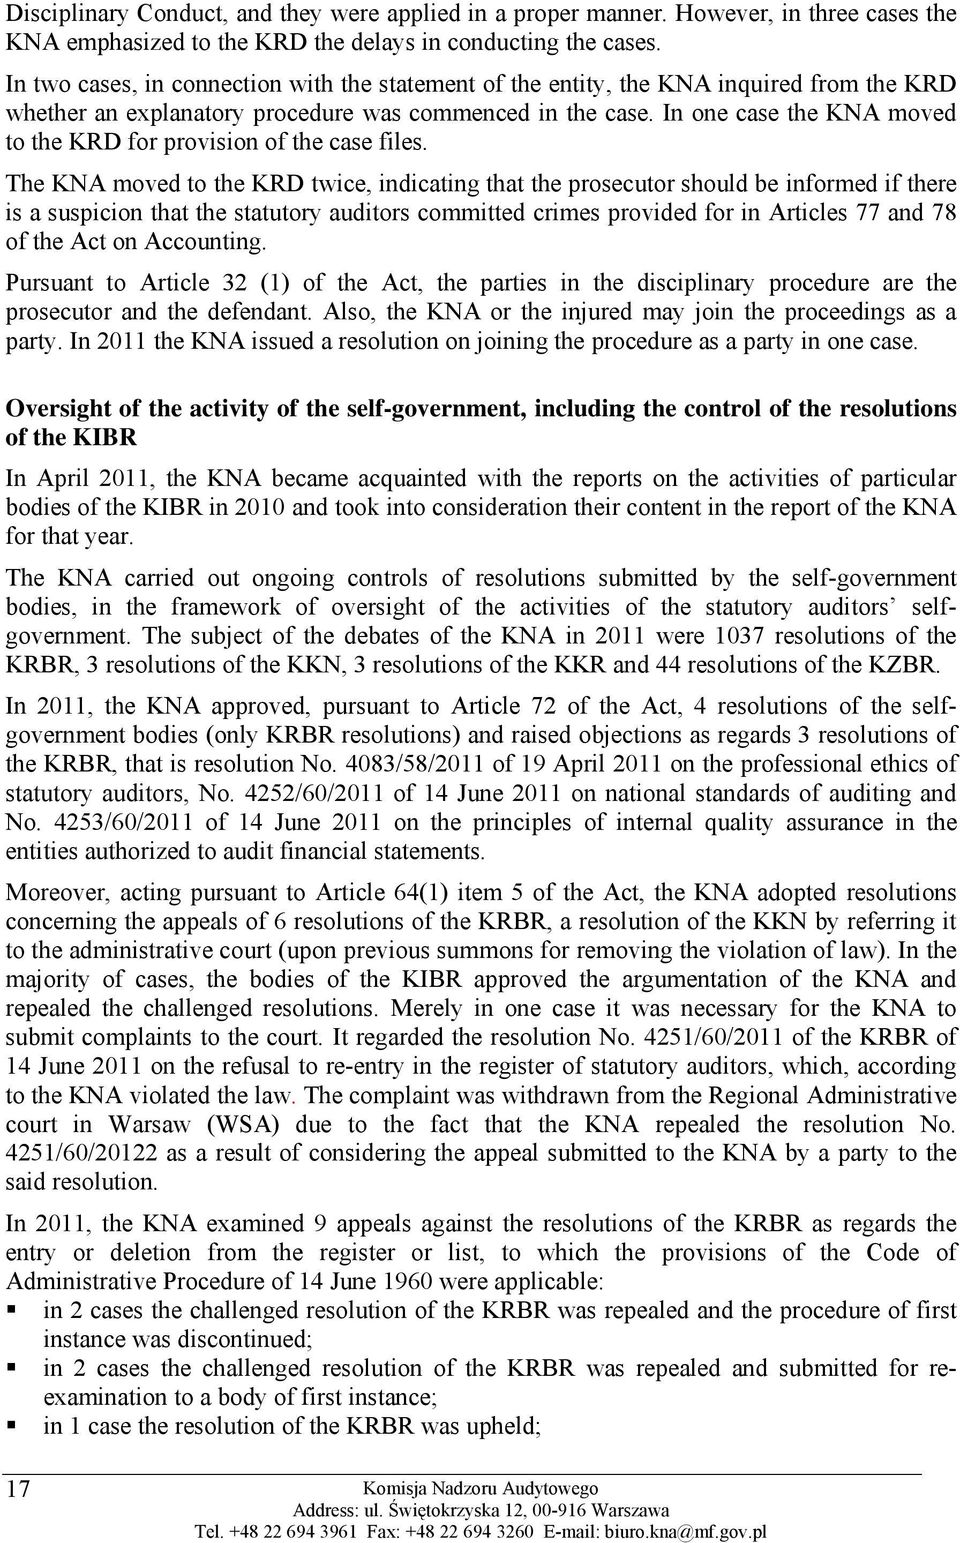 In one case the KNA moved to the KRD for provision of the case files.